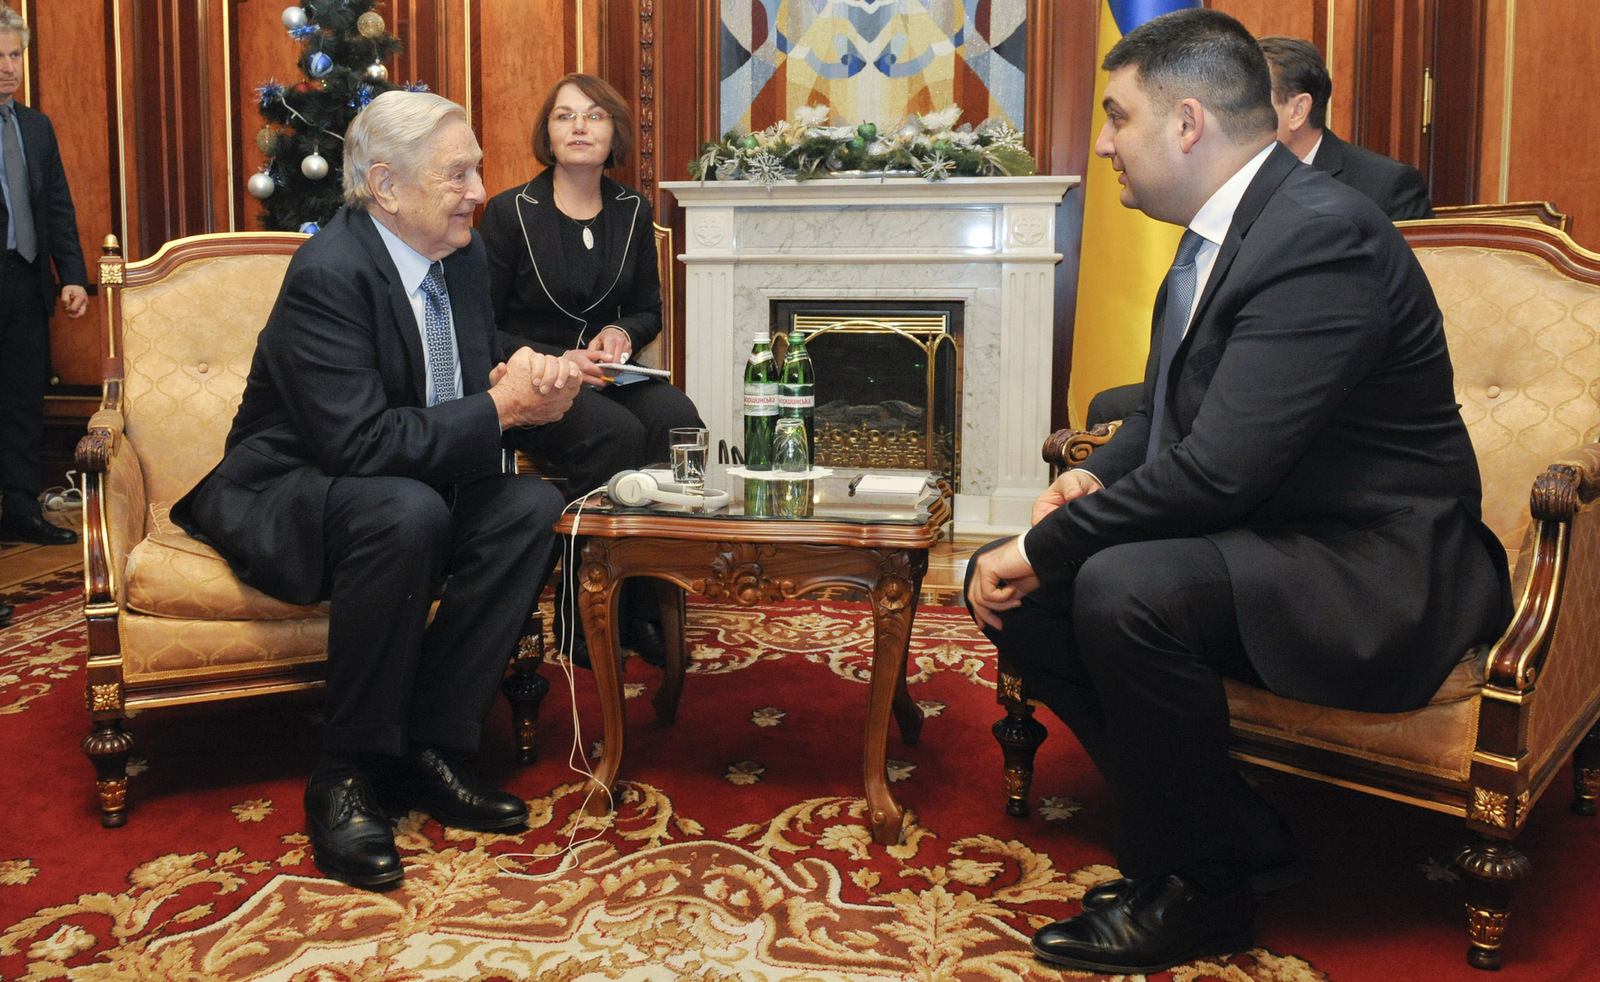 George Soros, left, chairman of Soros Fund Management and founder of The Open Society Institute, speak with Volodymyr Groysman, Ukrainian parliament speaker in Kiev, Ukraine, Monday, Jan. 12, 2015. (AP/Anastasiia Sirotkina)